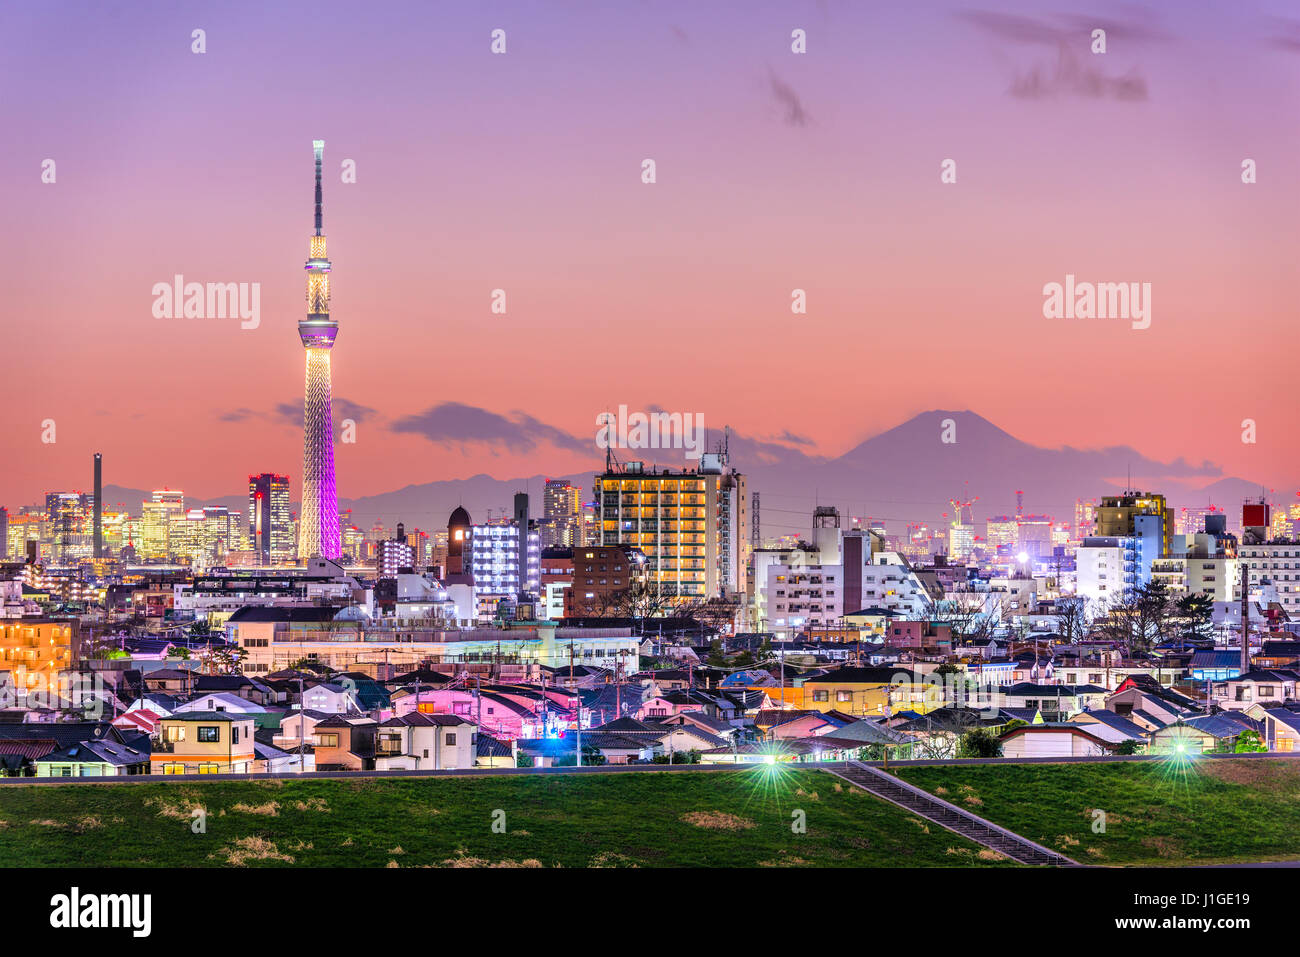 Tokyo, Japan skyline with Mt. Fuji and the Skytree Tower. - Stock Image